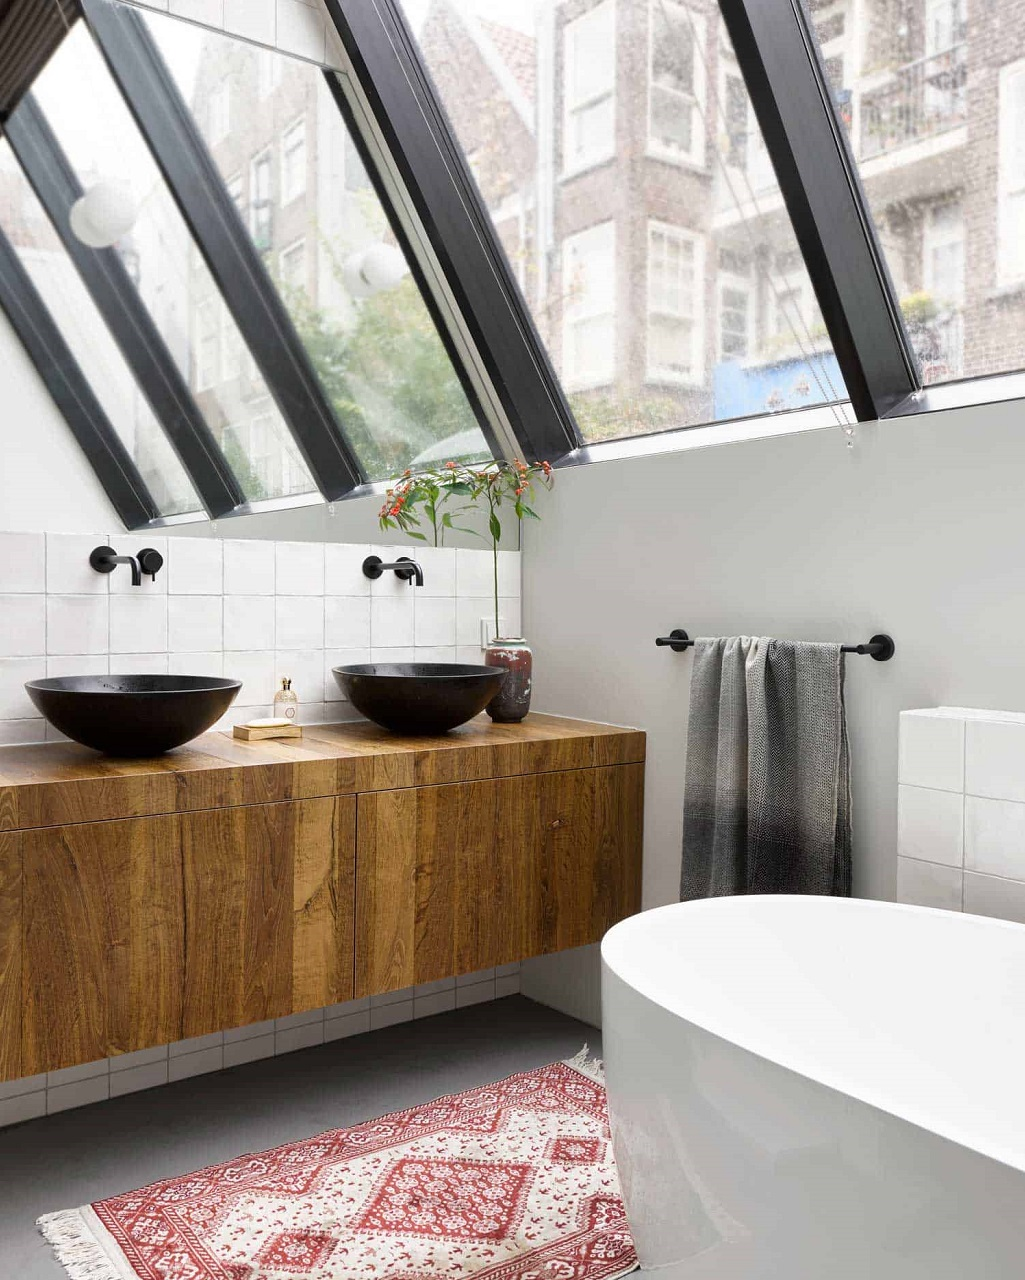 The Nordroom - A Warm Industrial Factory Conversion in Amsterdam